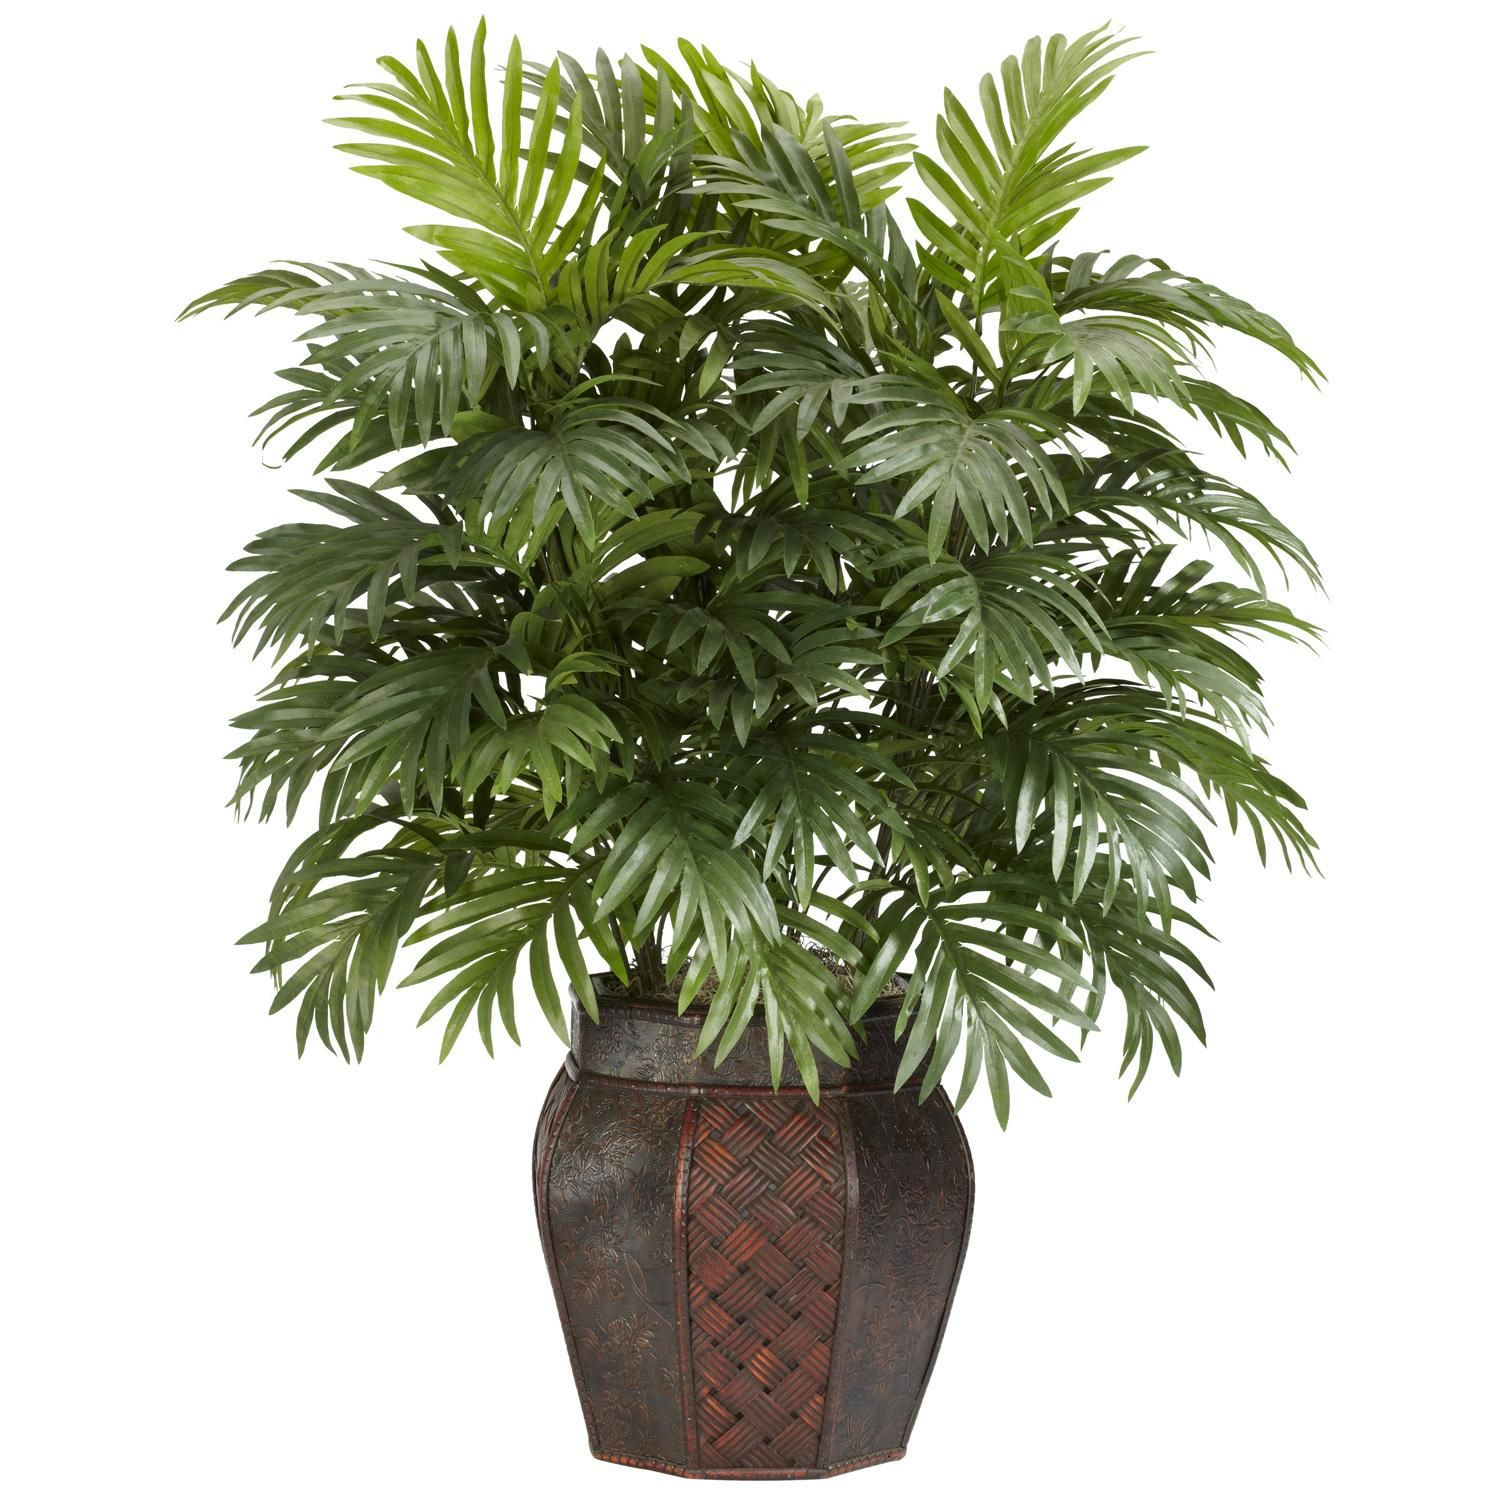 Add elegance to your home with this decorative 38-inch Areca palm plant.  This